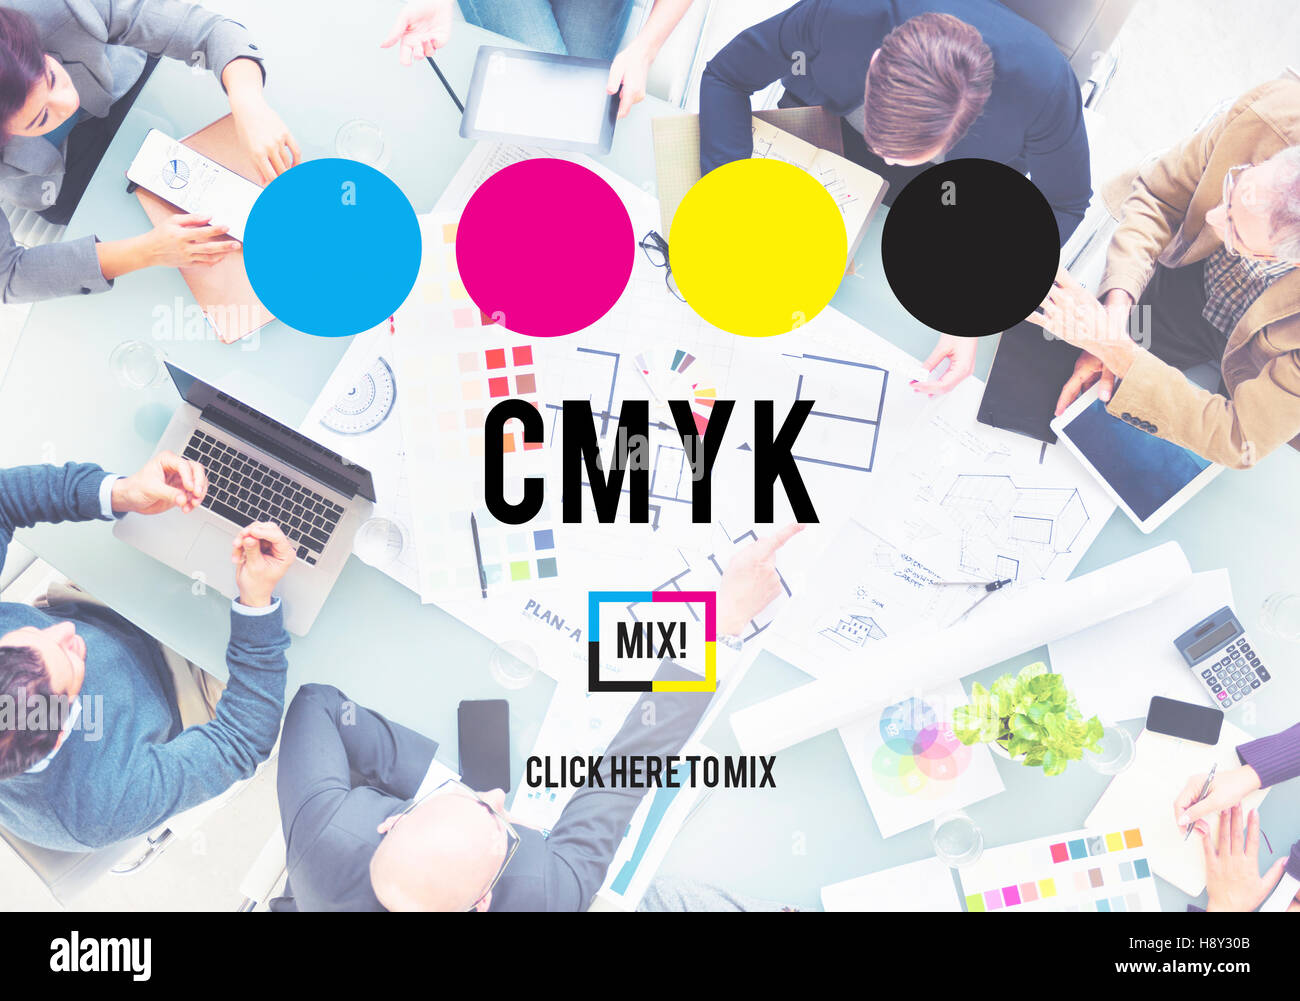 Cmyk cyan magenta yellow key color printing process concept stock cmyk cyan magenta yellow key color printing process concept malvernweather Image collections